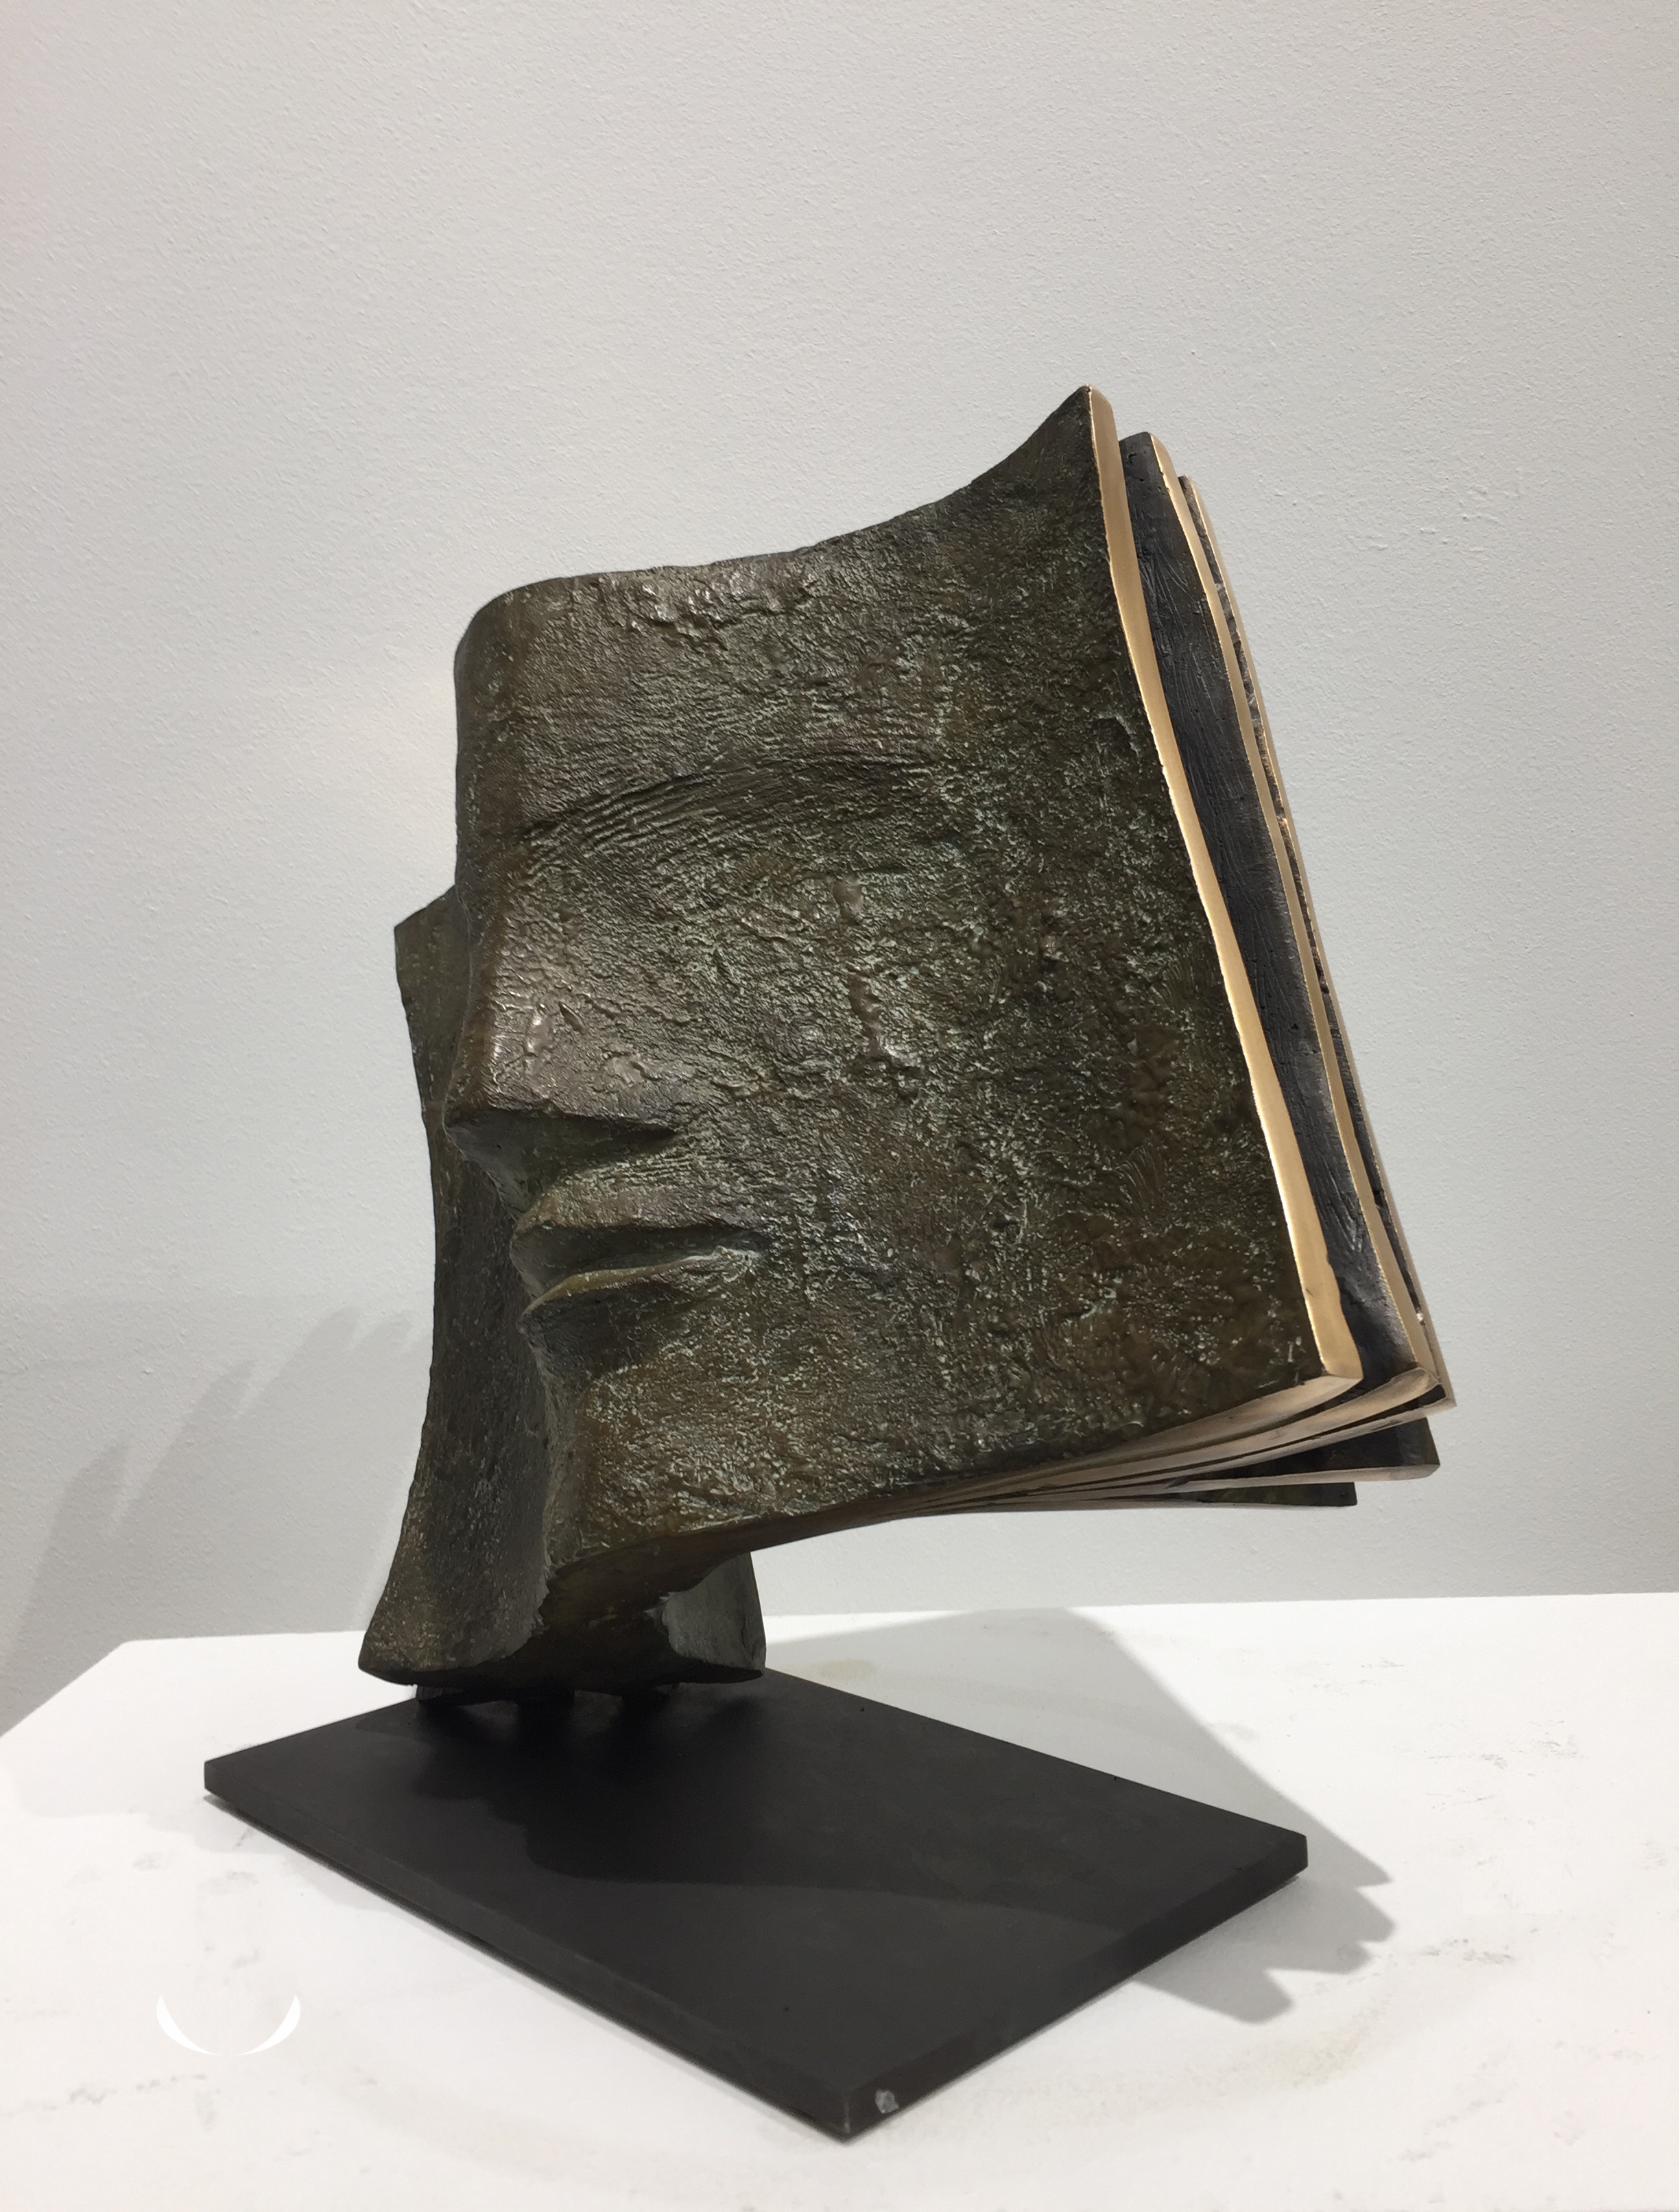 LIBRETTO Bronze 35x30x15cm / 13,7x11,8x5,9 inches